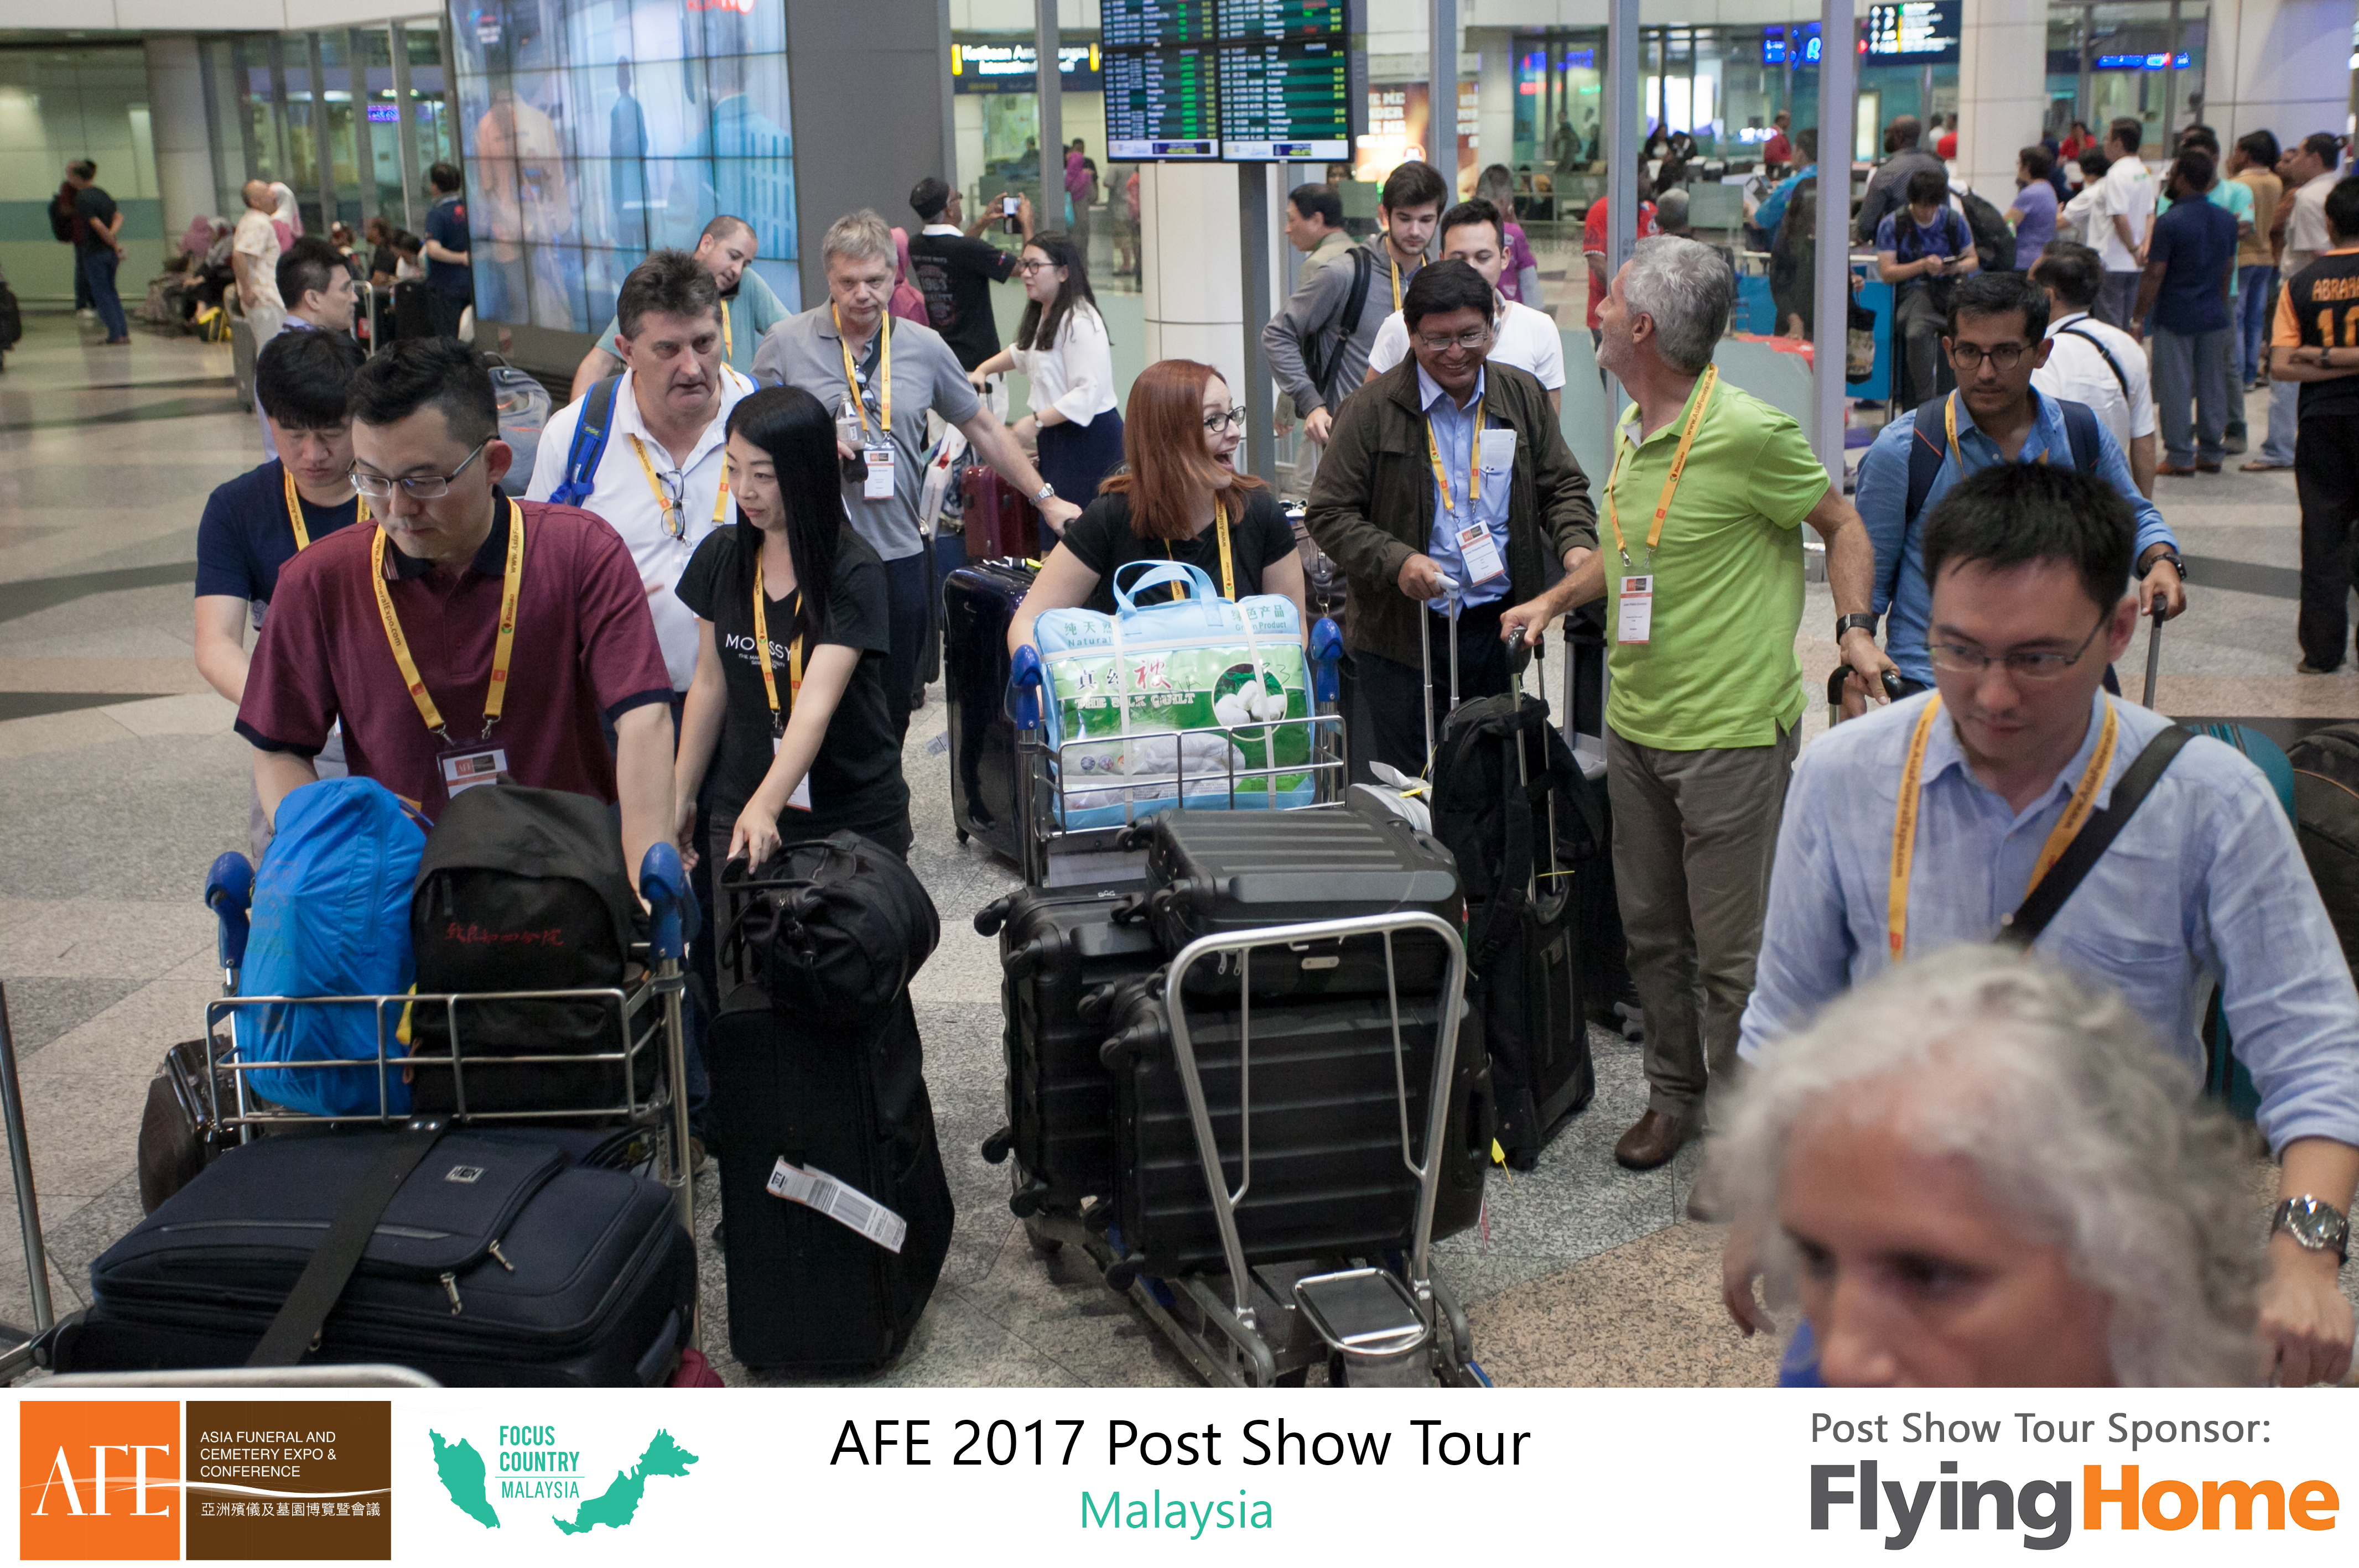 AFE Post Show Tour 2017 Day 1 - 06